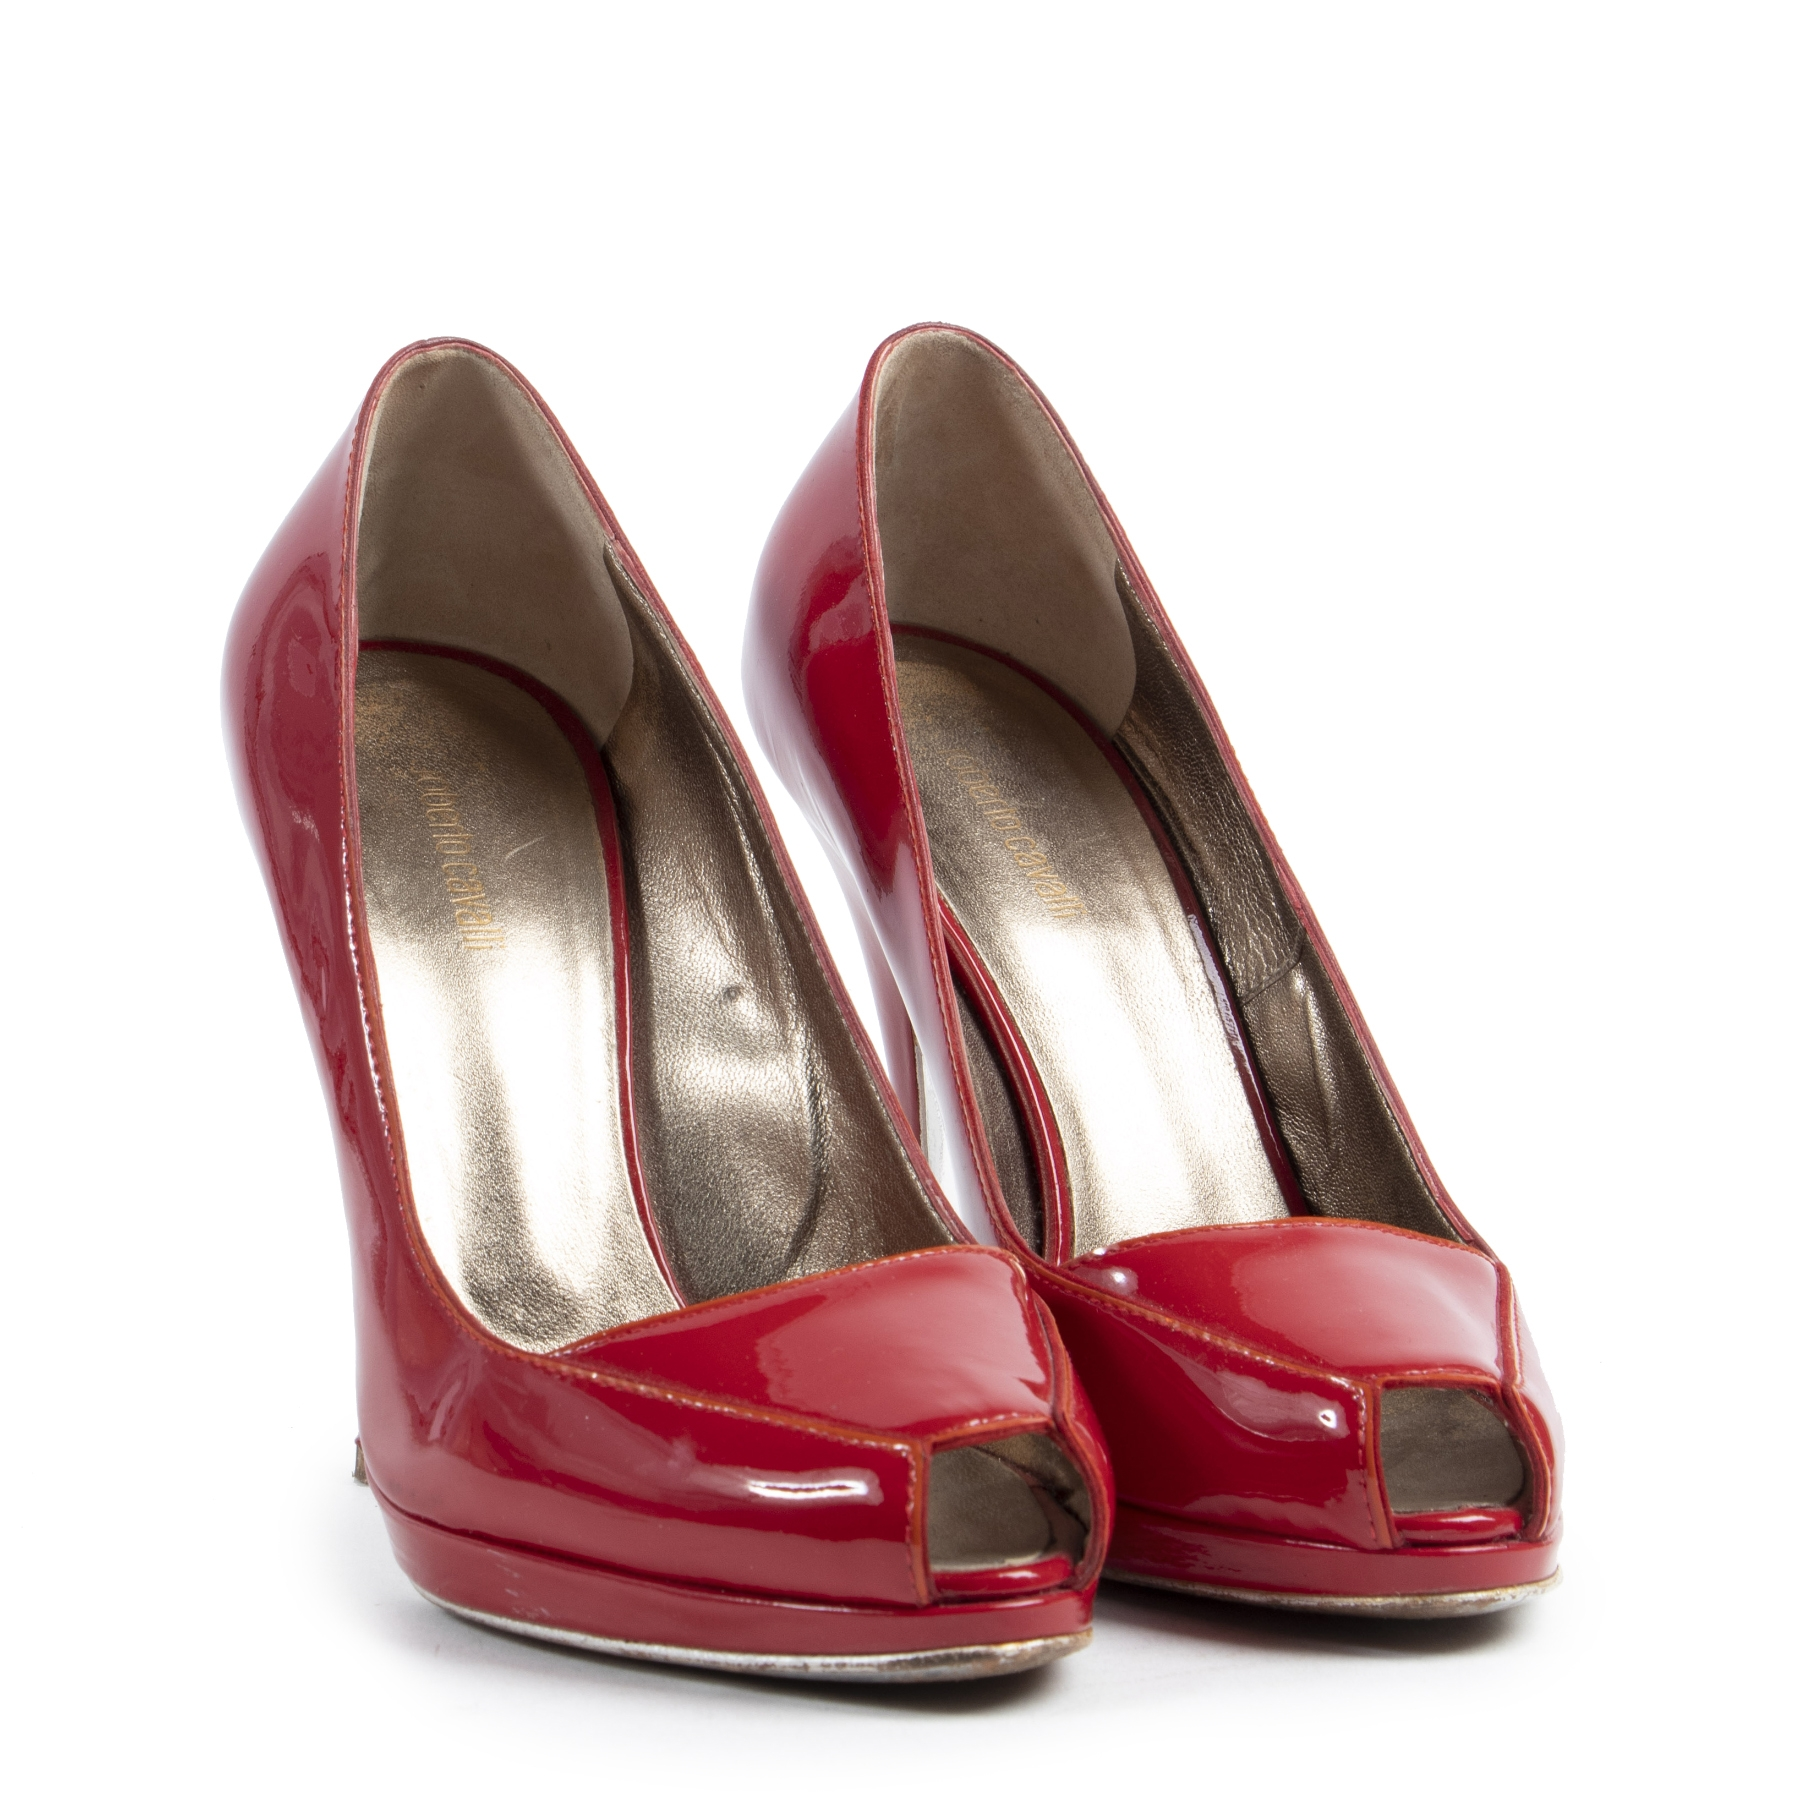 Authentieke tweedehands vintage Roberto Cavalli Red Open Toe Pumps - Size 37 koop online webshop LabelLOV